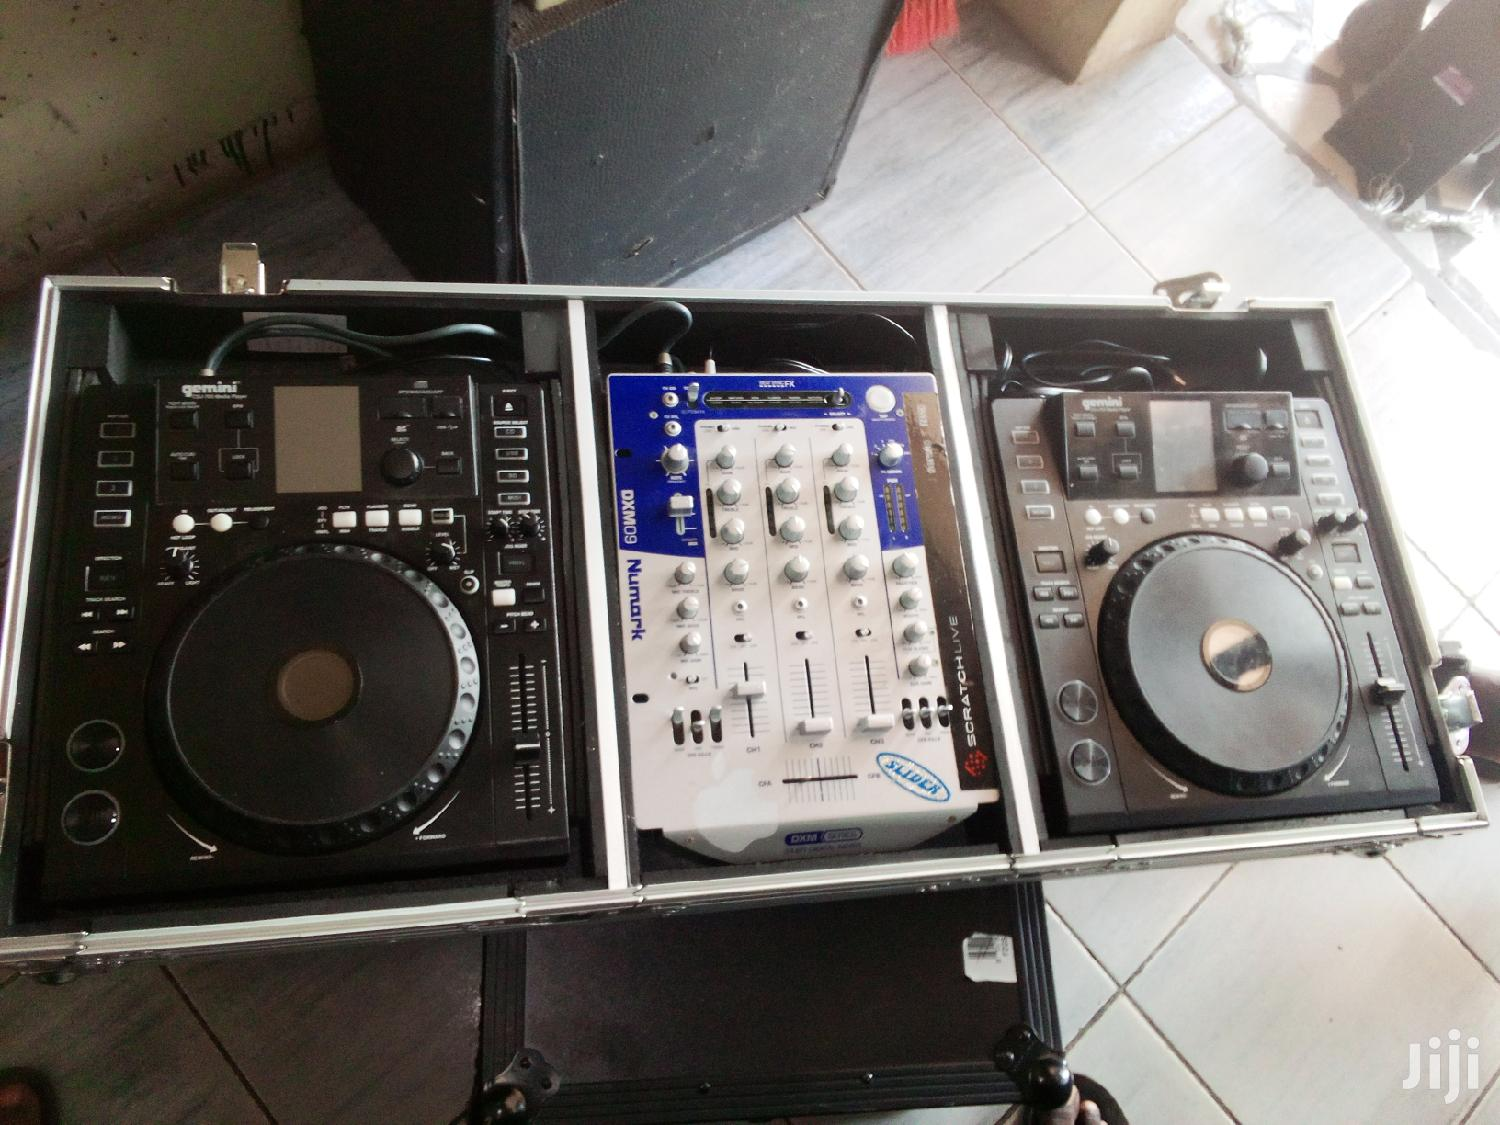 Archive: Dj Mixer With 2 Gemini Decks For Music Playing